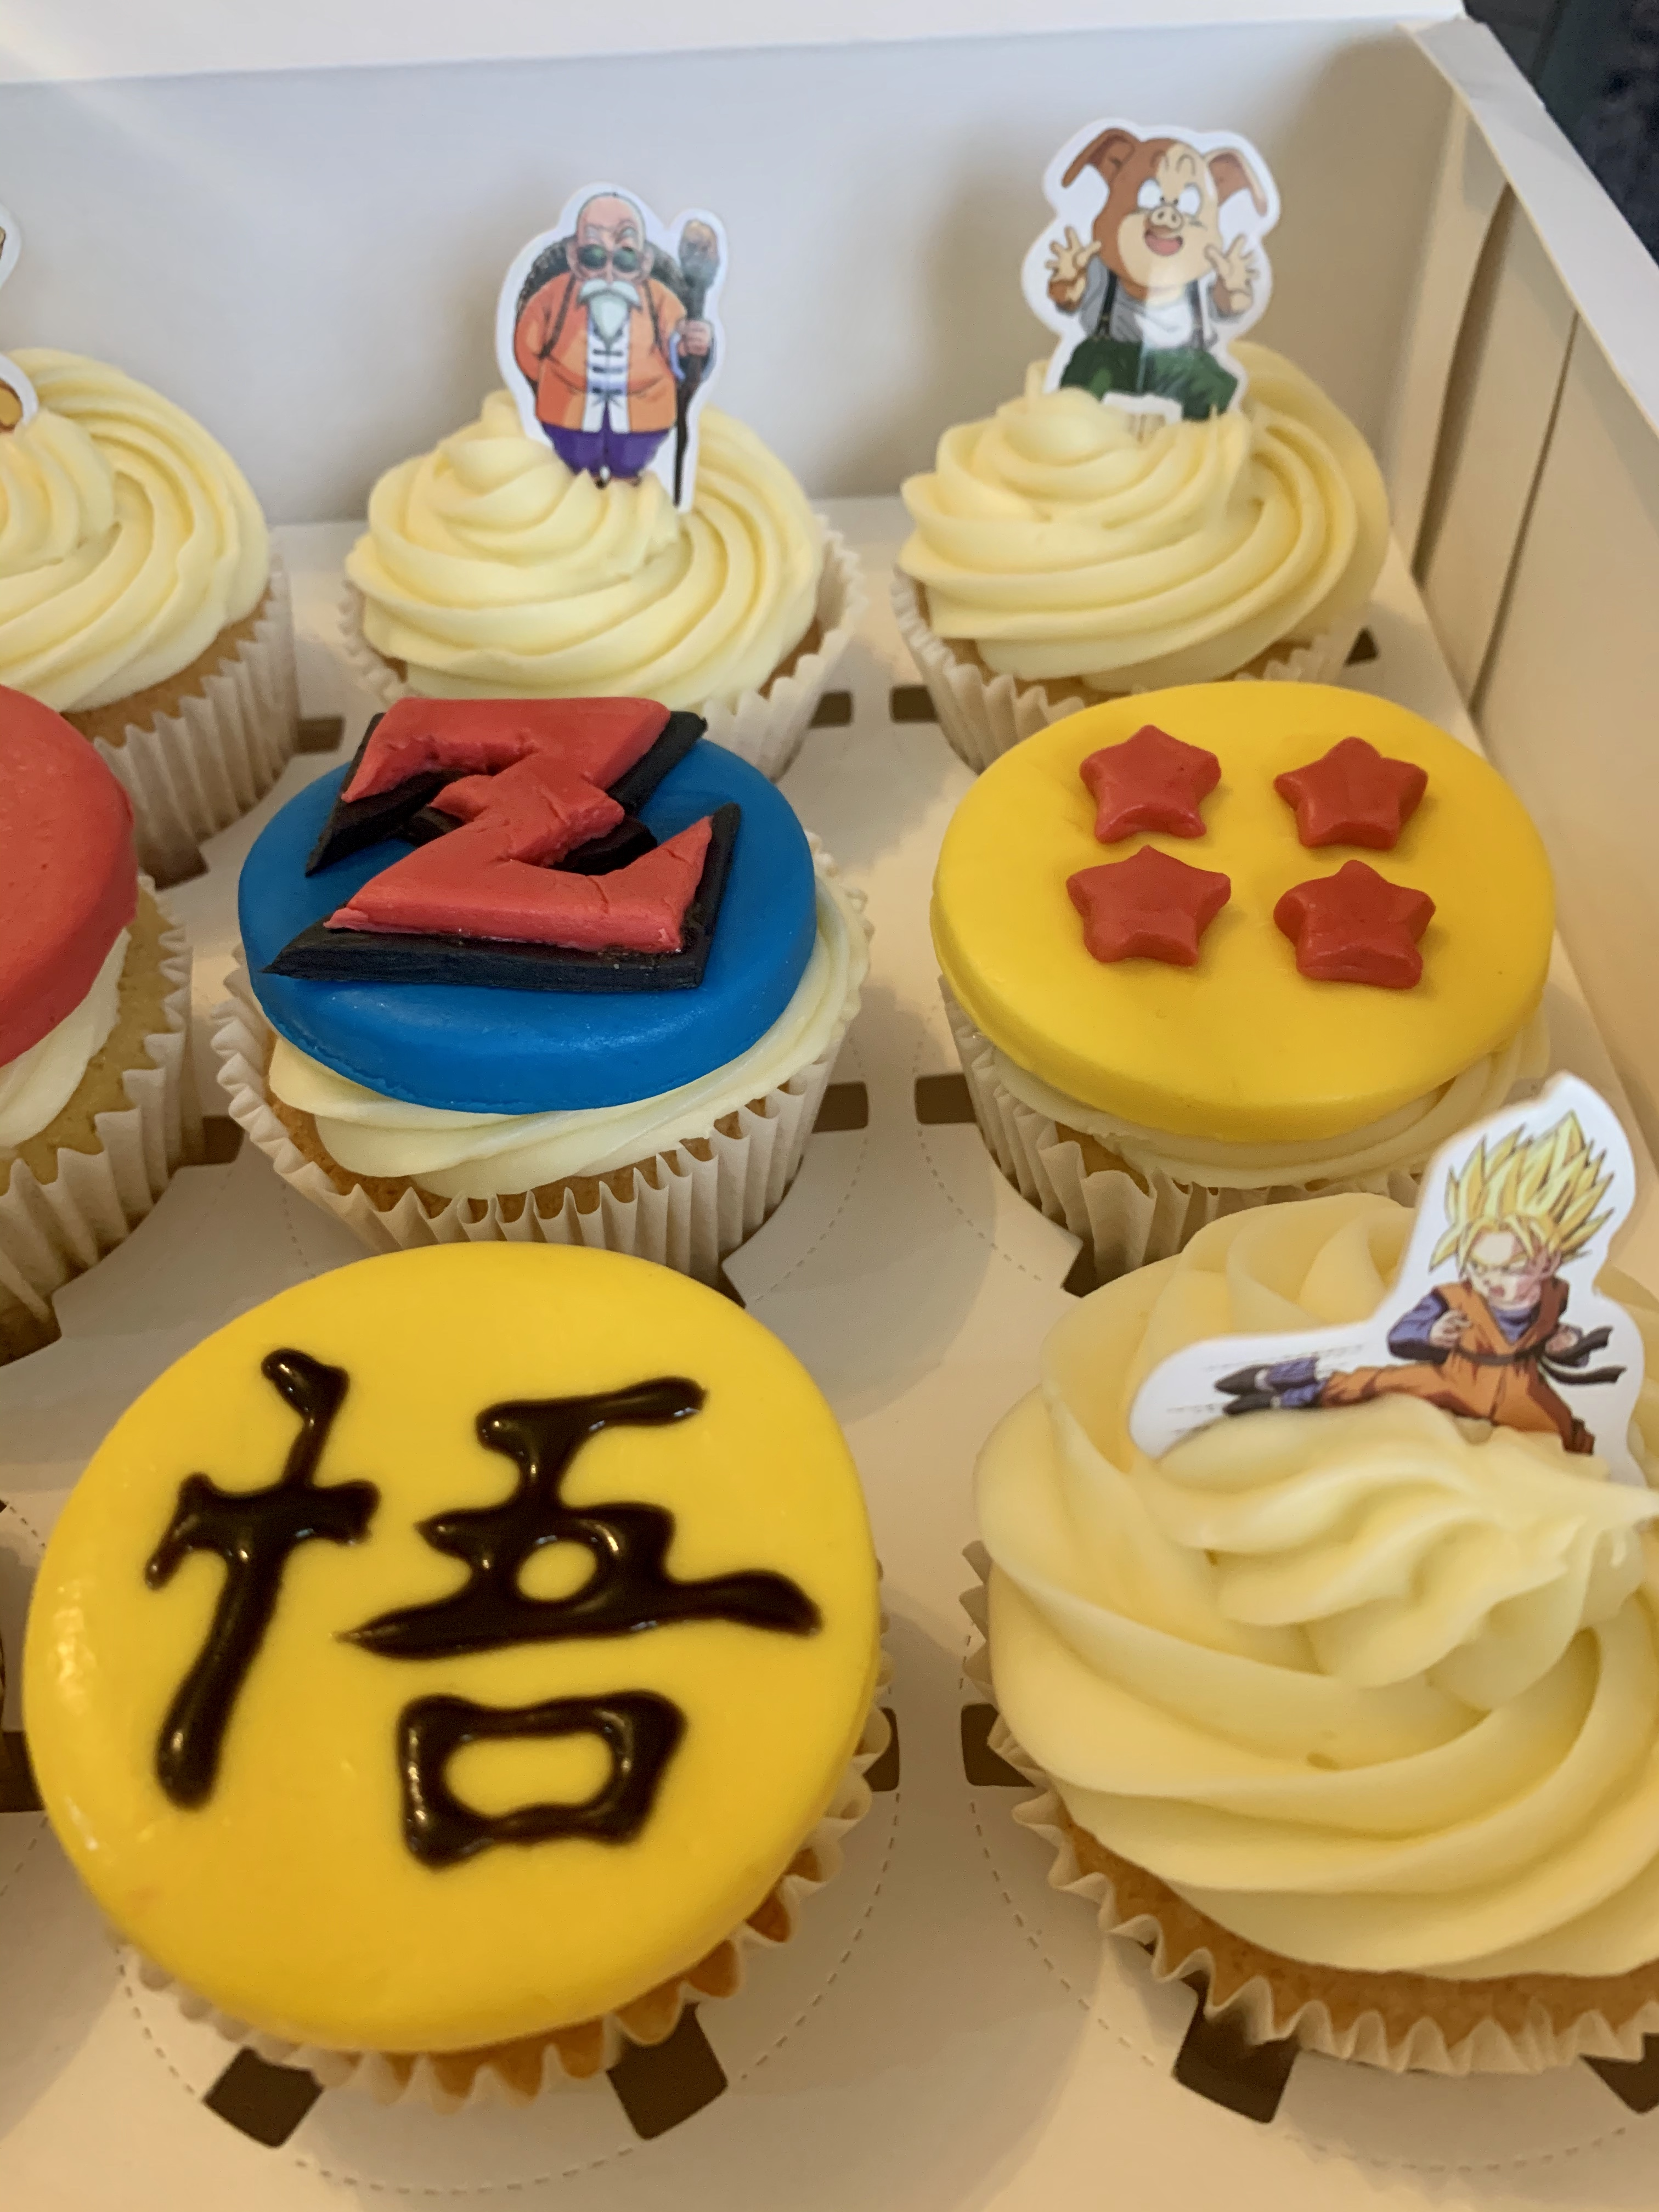 21.Dragon Ball Z Cupcakes